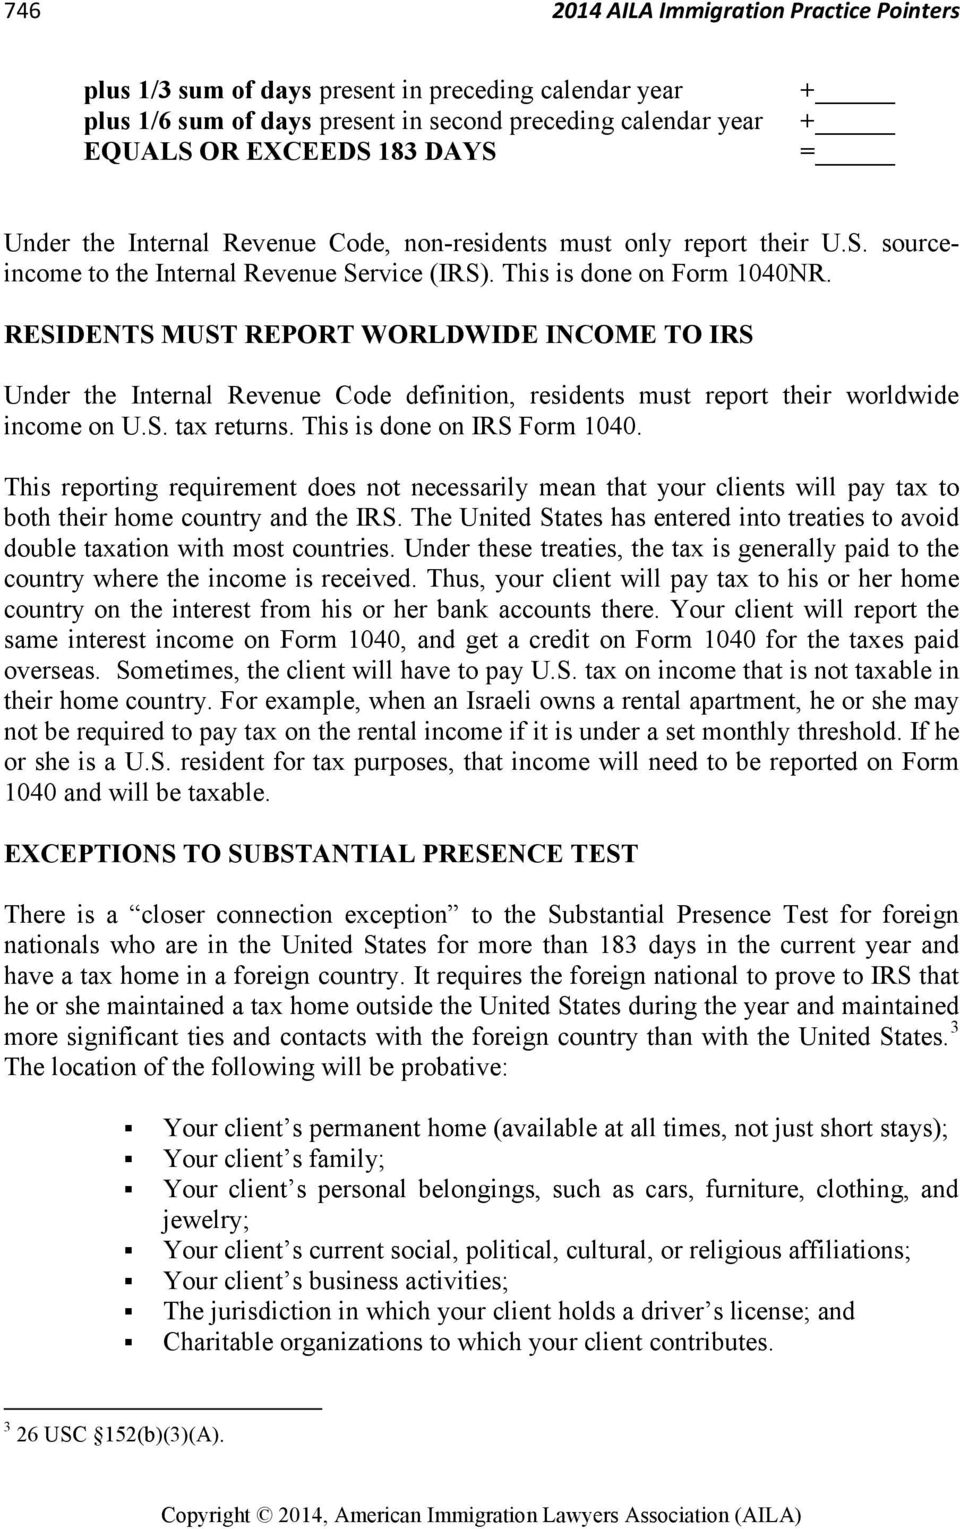 RESIDENTS MUST REPORT WORLDWIDE INCOME TO IRS Under the Internal Revenue Code definition, residents must report their worldwide income on U.S. tax returns. This is done on IRS Form 1040.